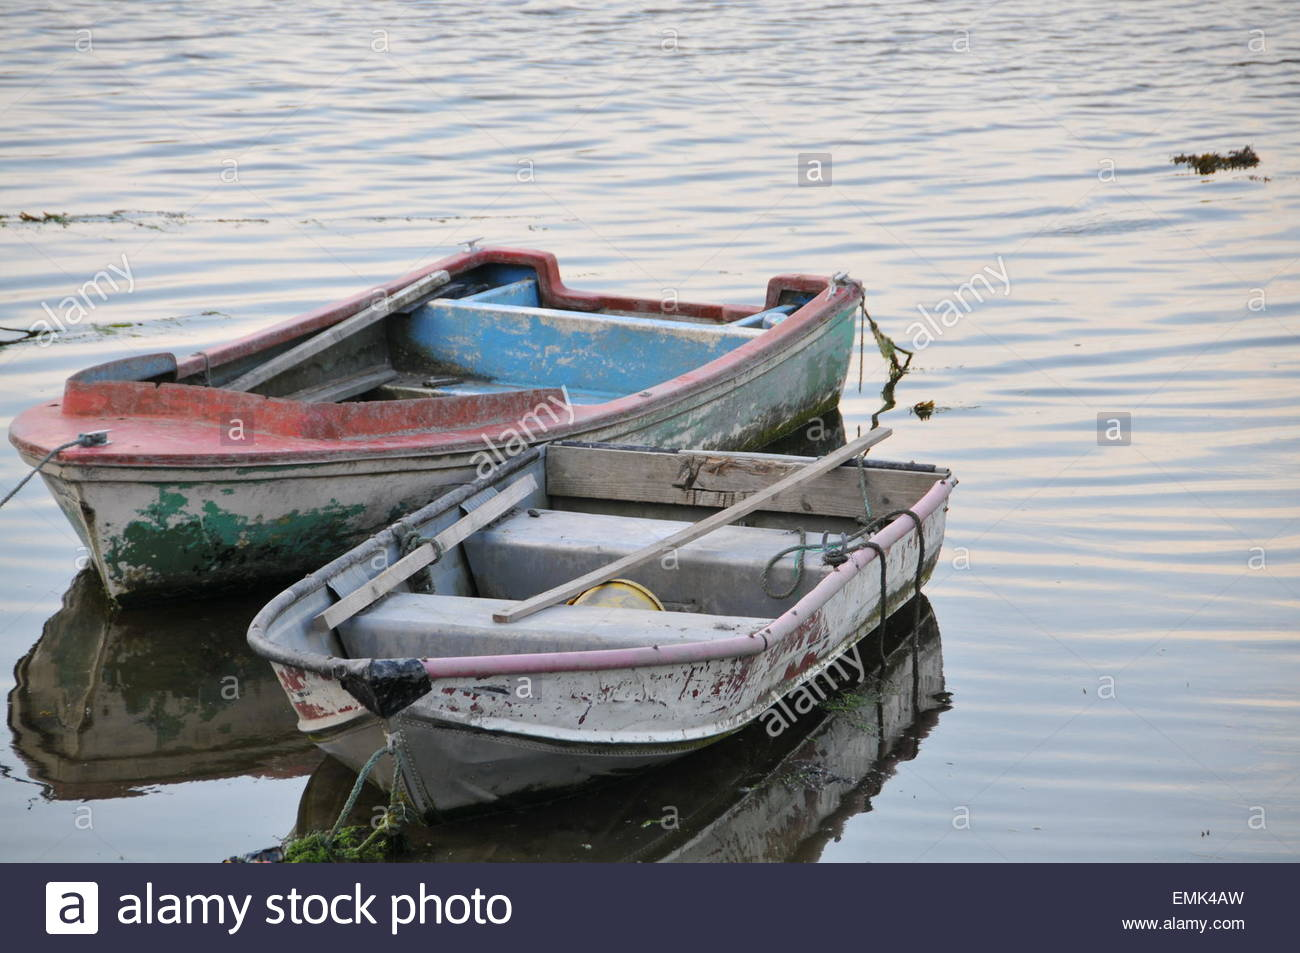 Two empty rowboats anchored side by side in calm water - Stock Image